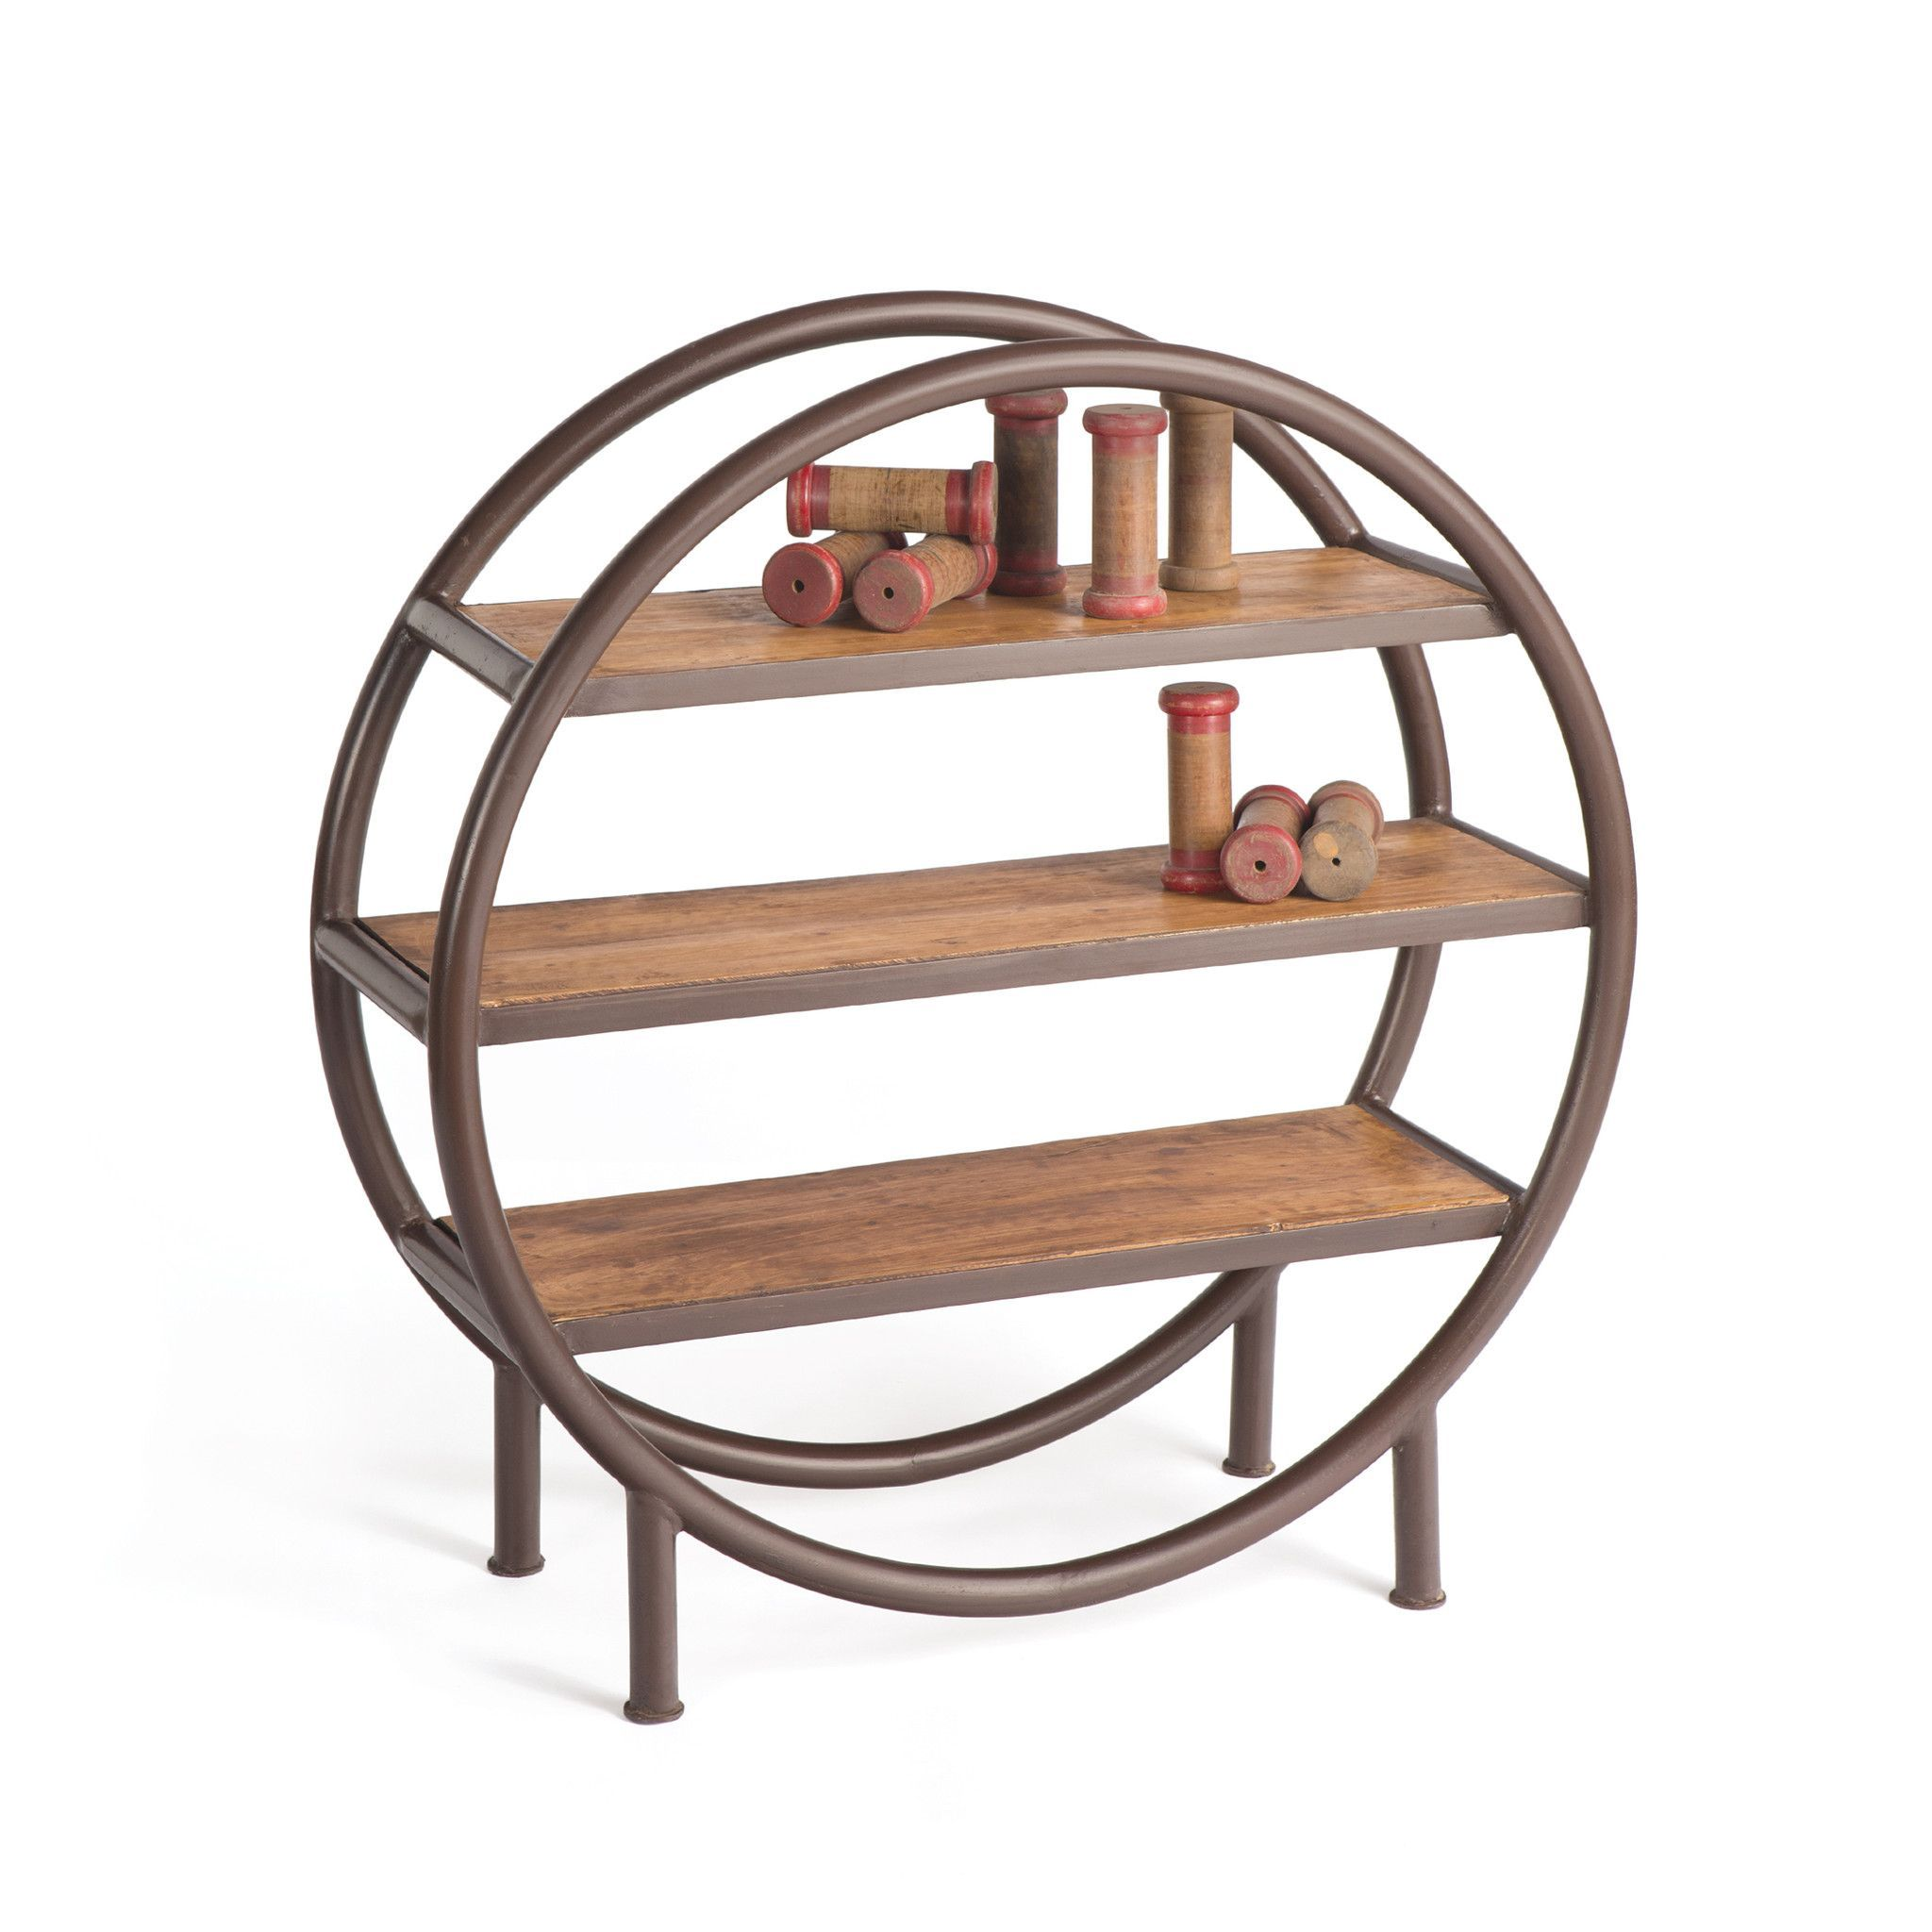 furniture wall home and size circle shelves easy bookshelf full circular stylish wooden best of elegant diy design